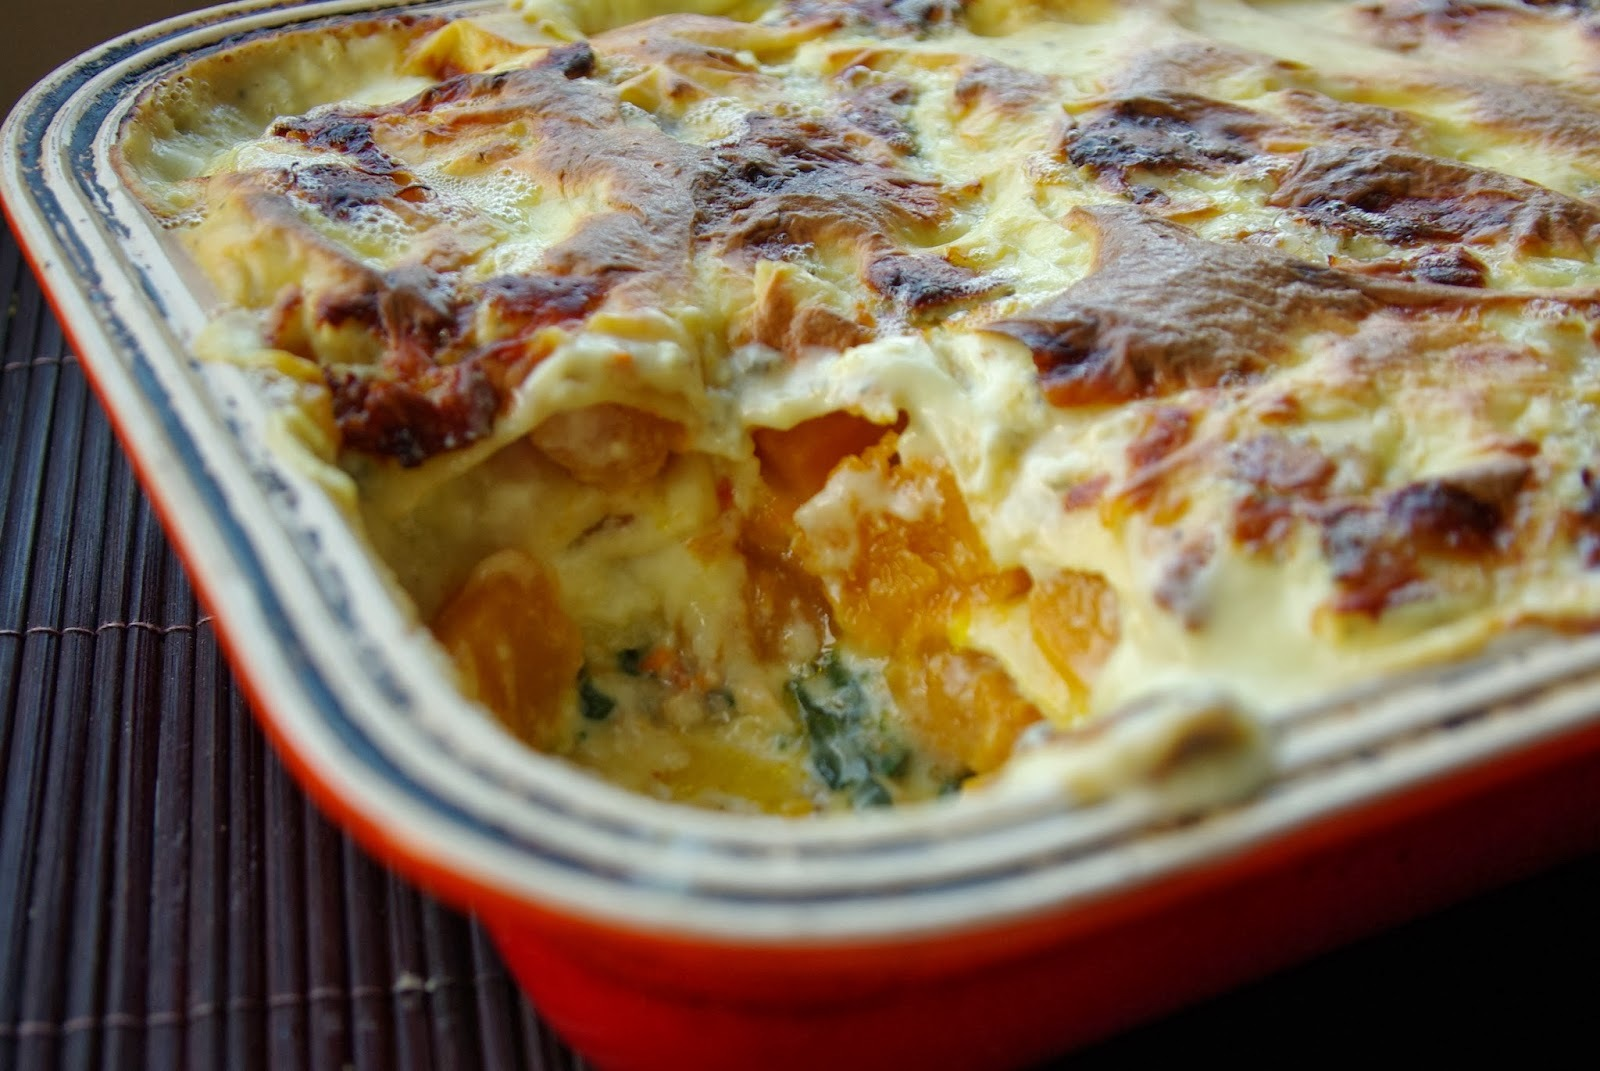 Butternut squash and spinach lasagne with blue cheese